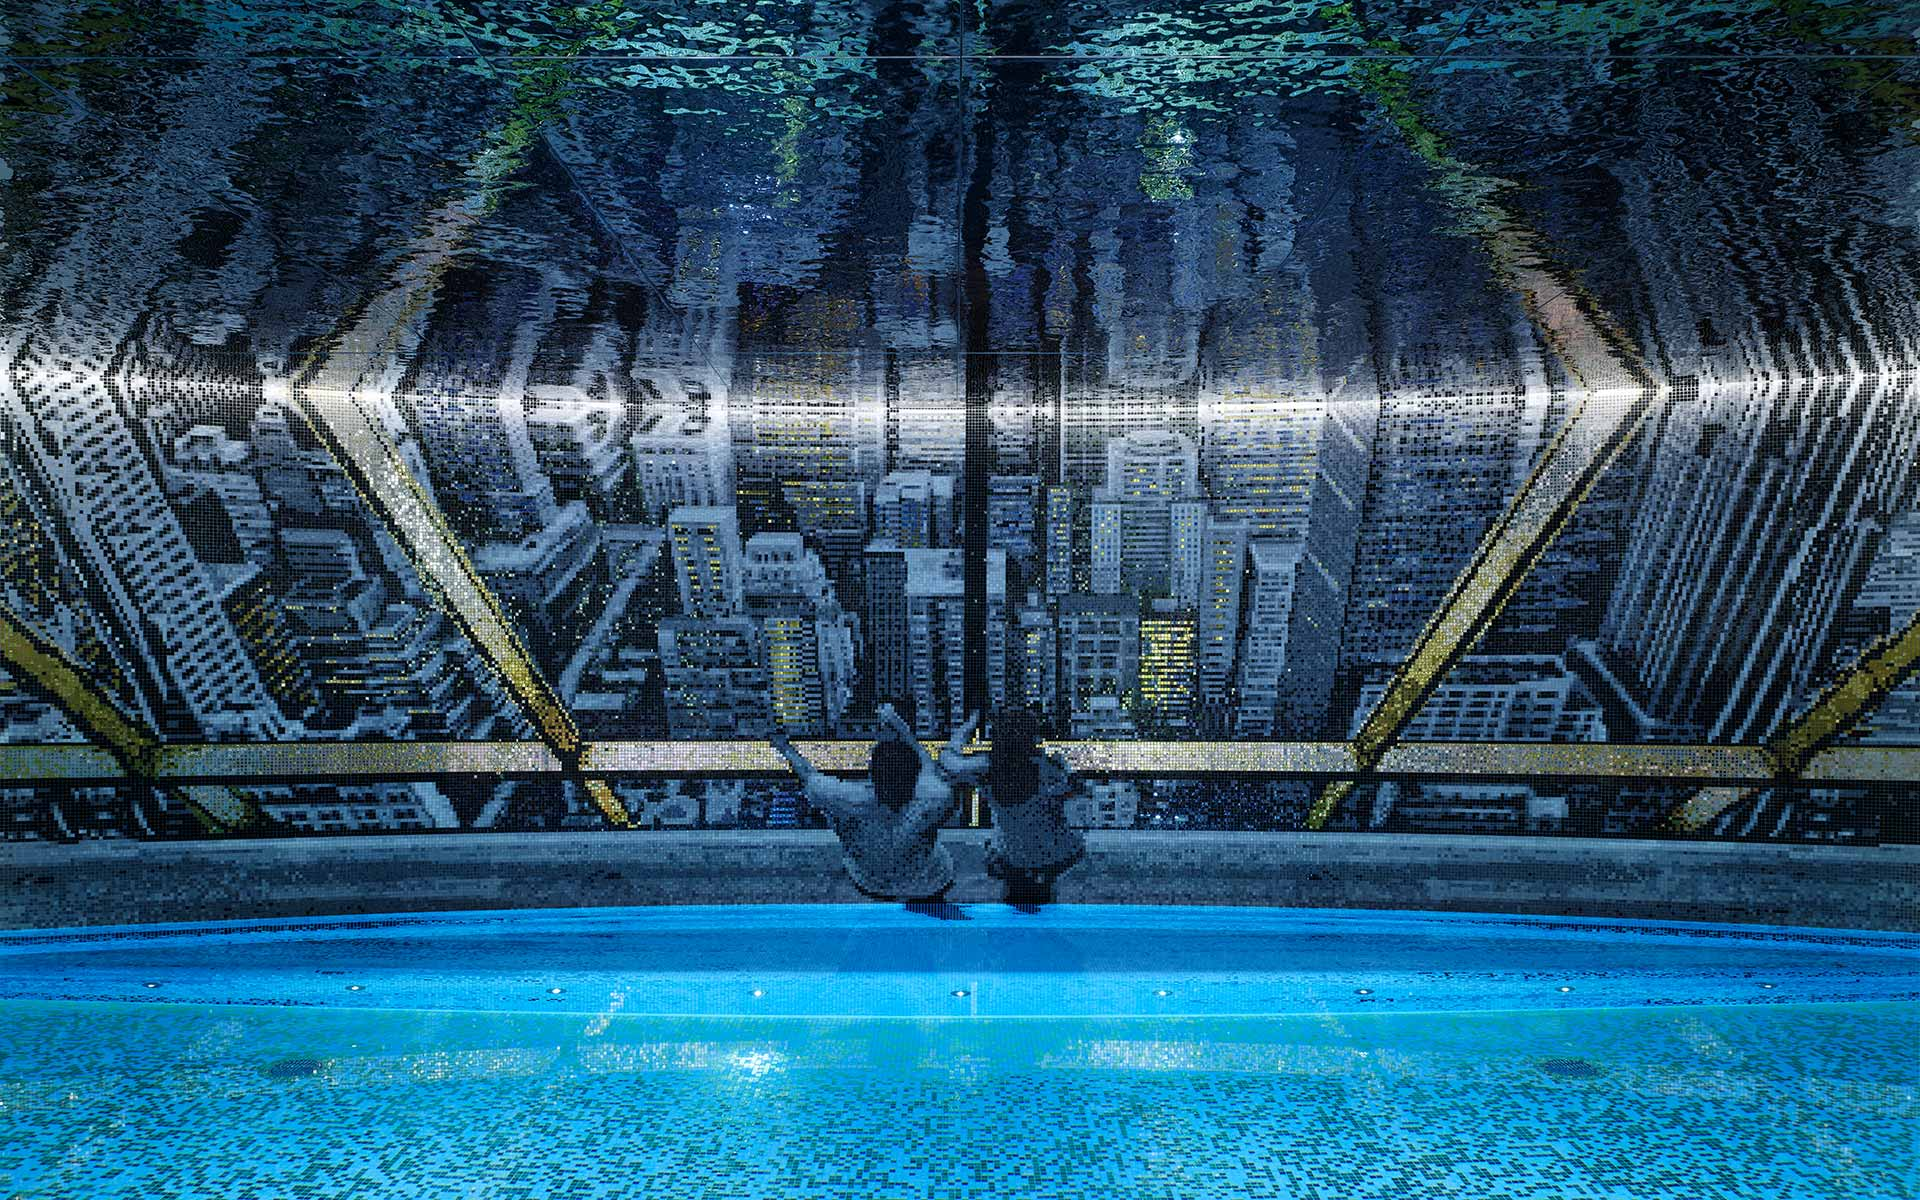 Private subterranean swimming pool with bespoke mosaic artwork